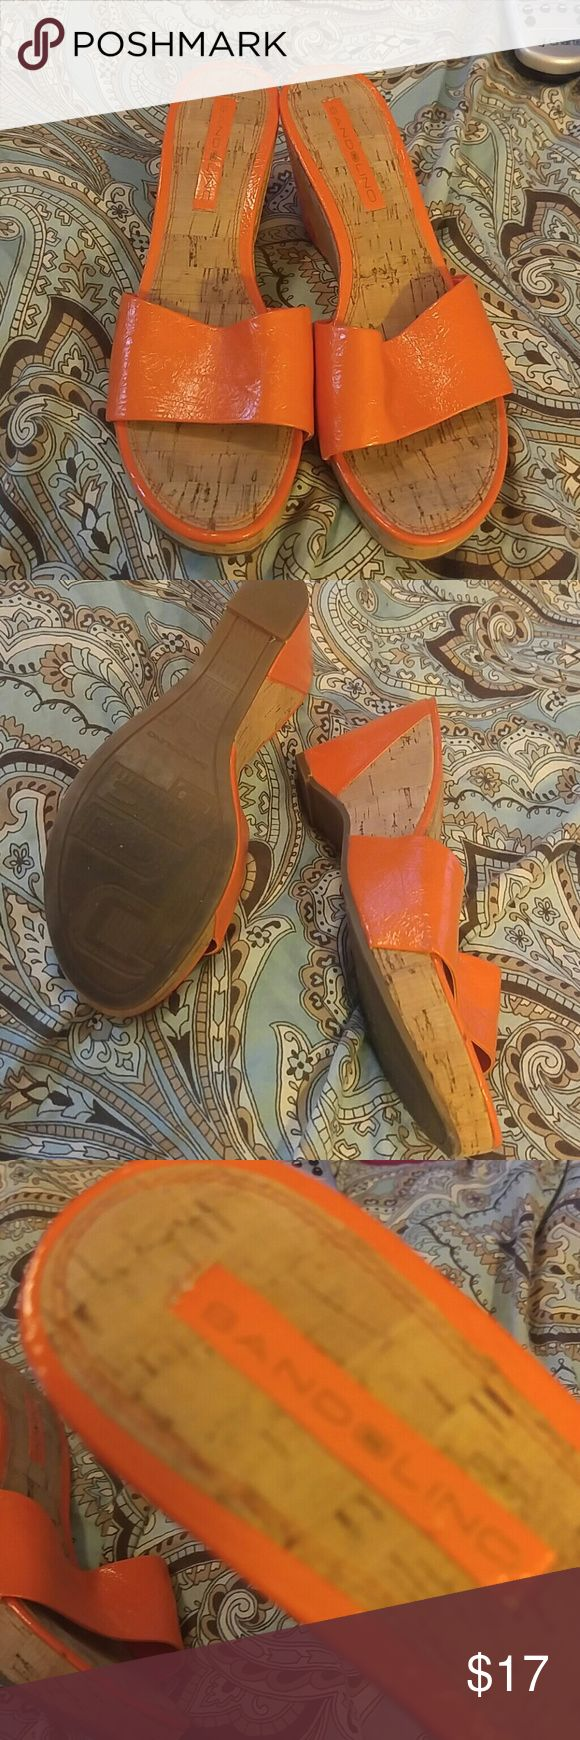 Orange Wedges Lovely Orange and cork wedges Bandolino Shoes Wedges